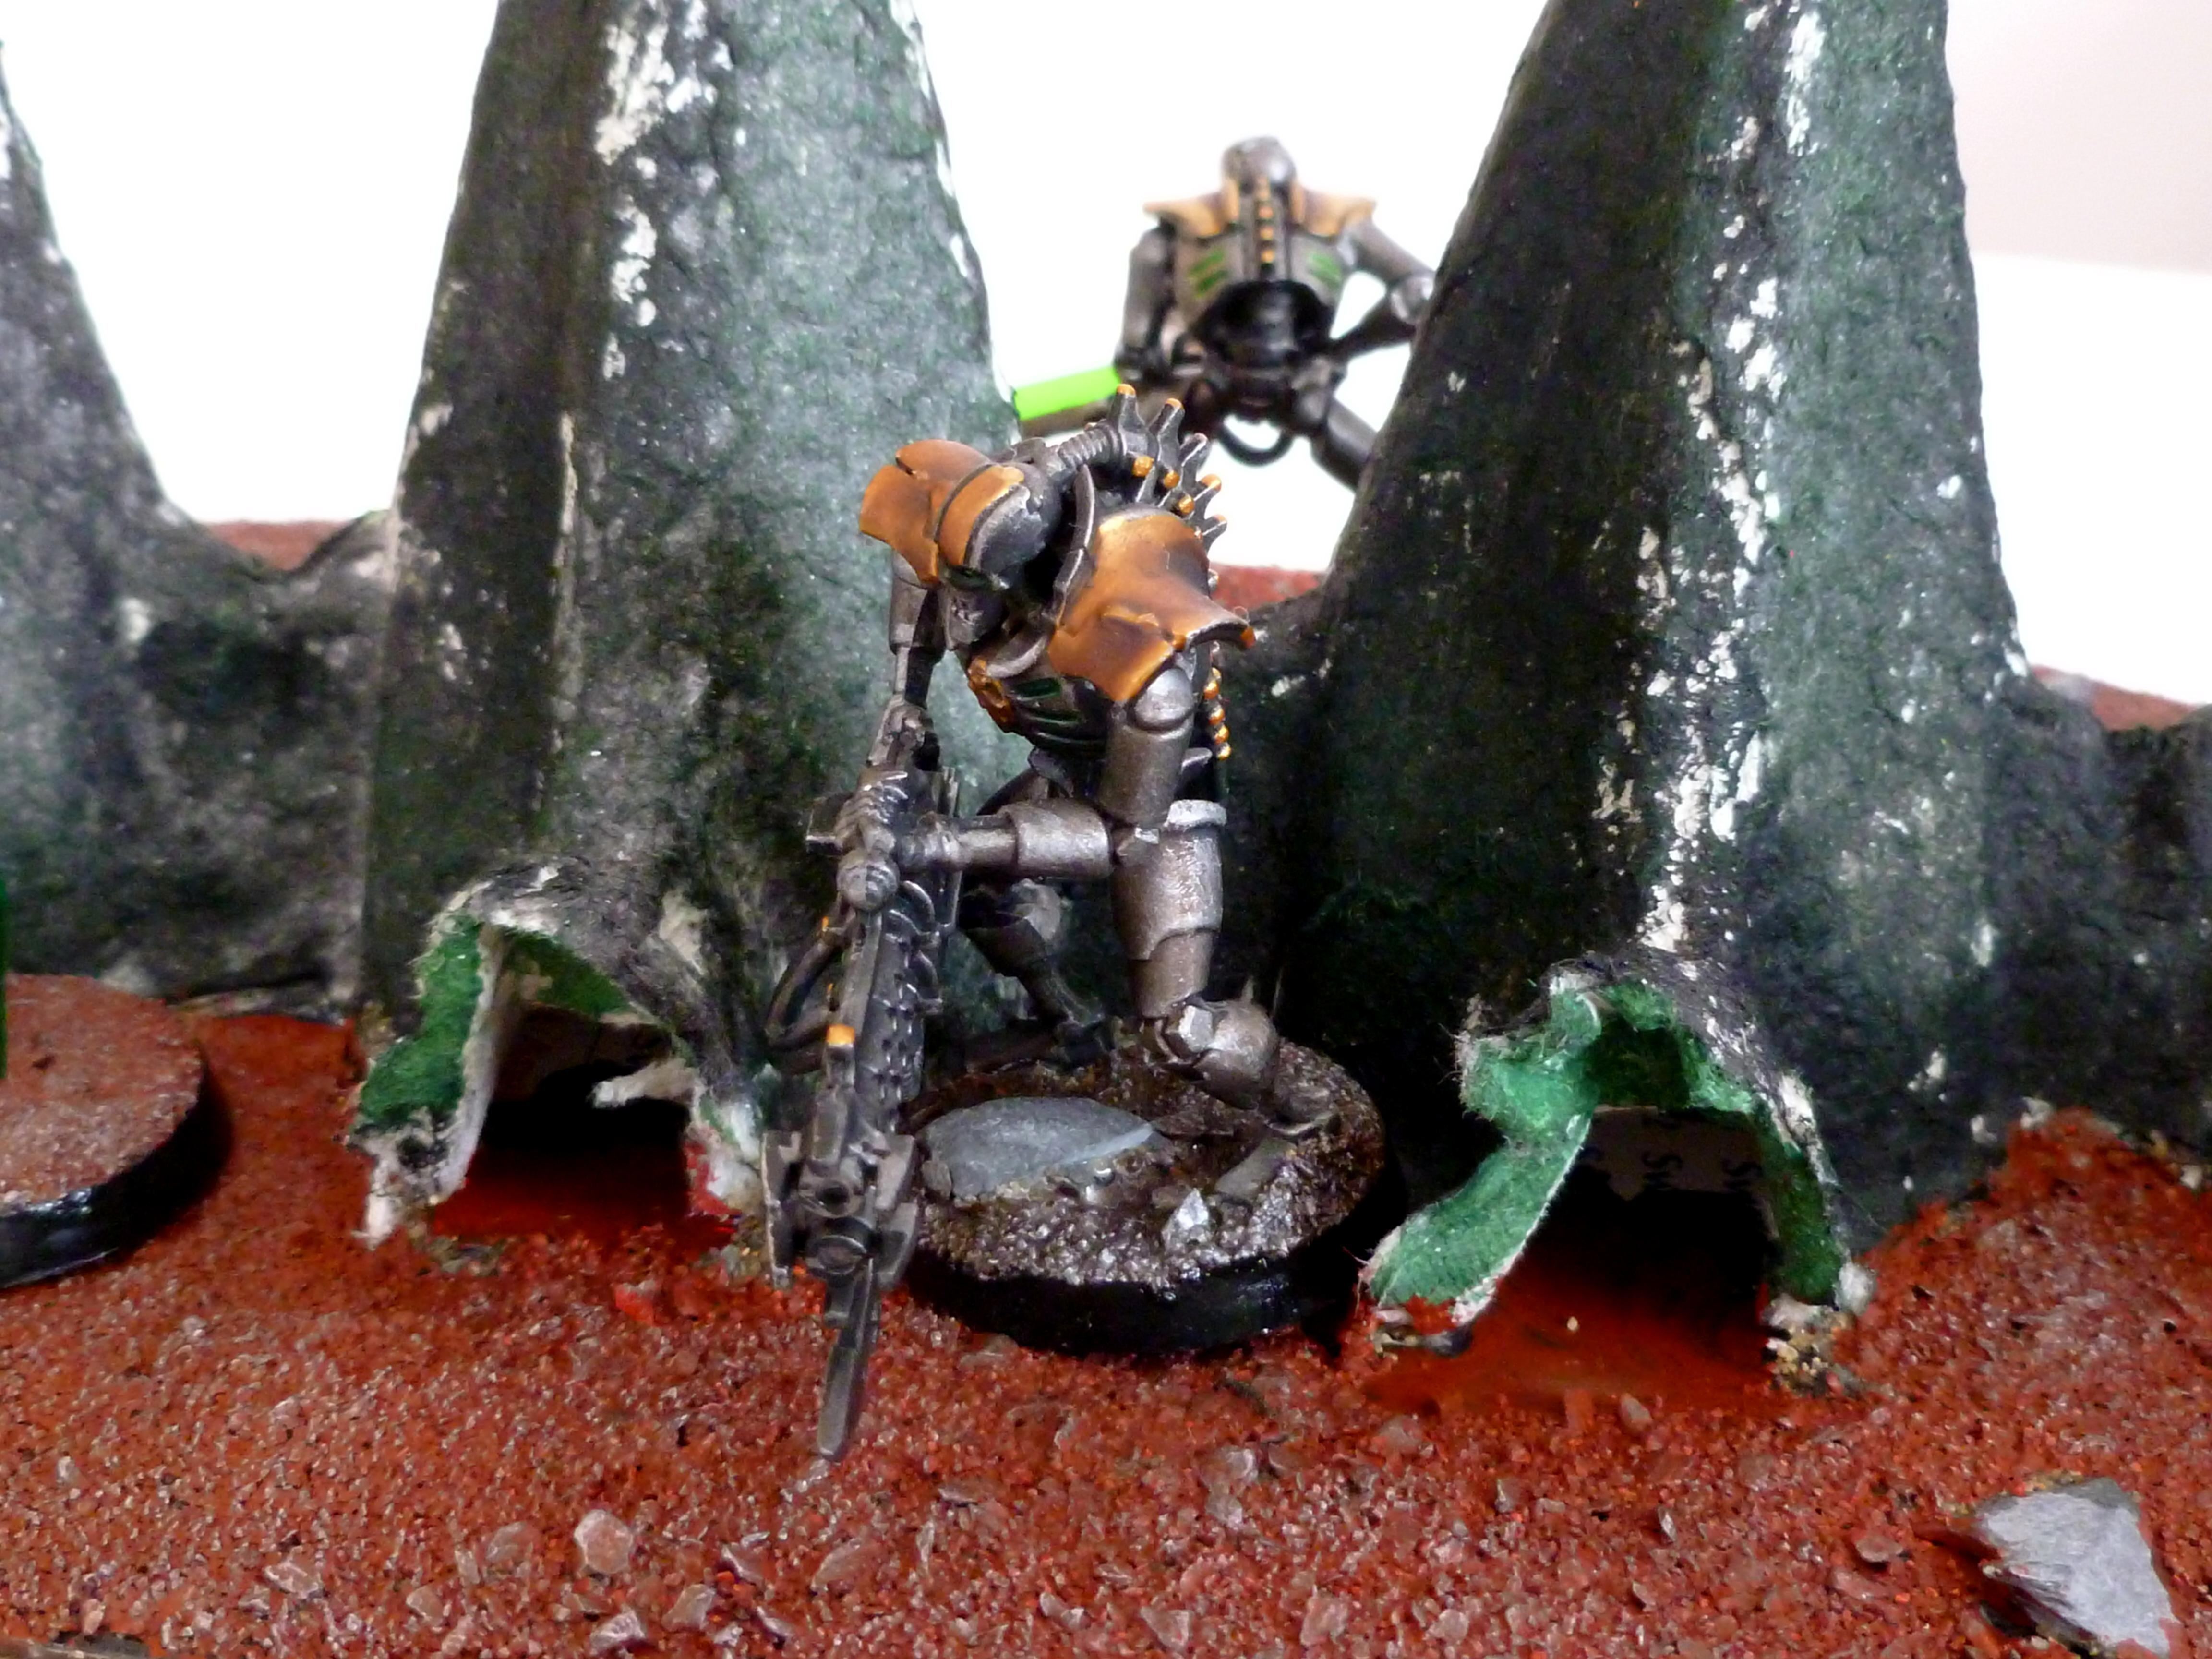 Ancient, Black, Desert, First, Gold, Green, Grey, Living Metal, Necrons, New, Playing, Red, Sand, Stone, Tales, Toy, Toys